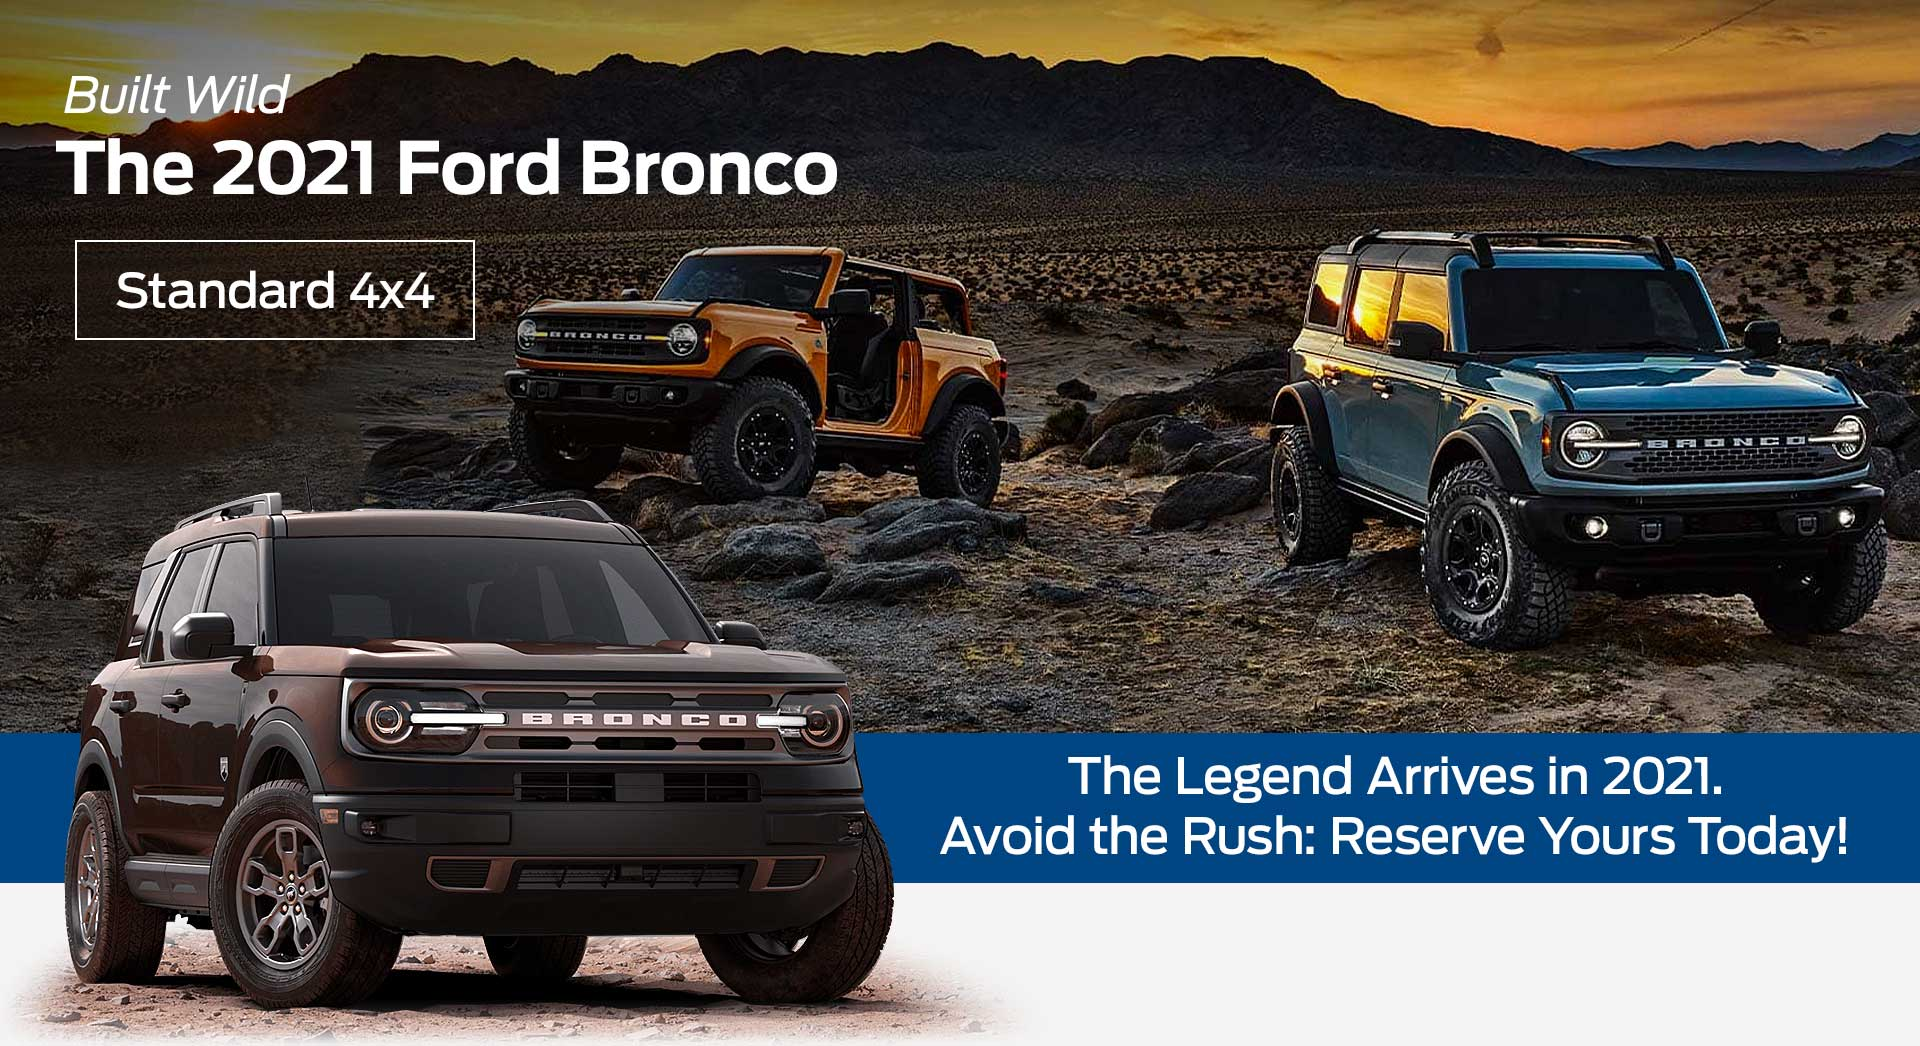 The 2021 Ford Bronco